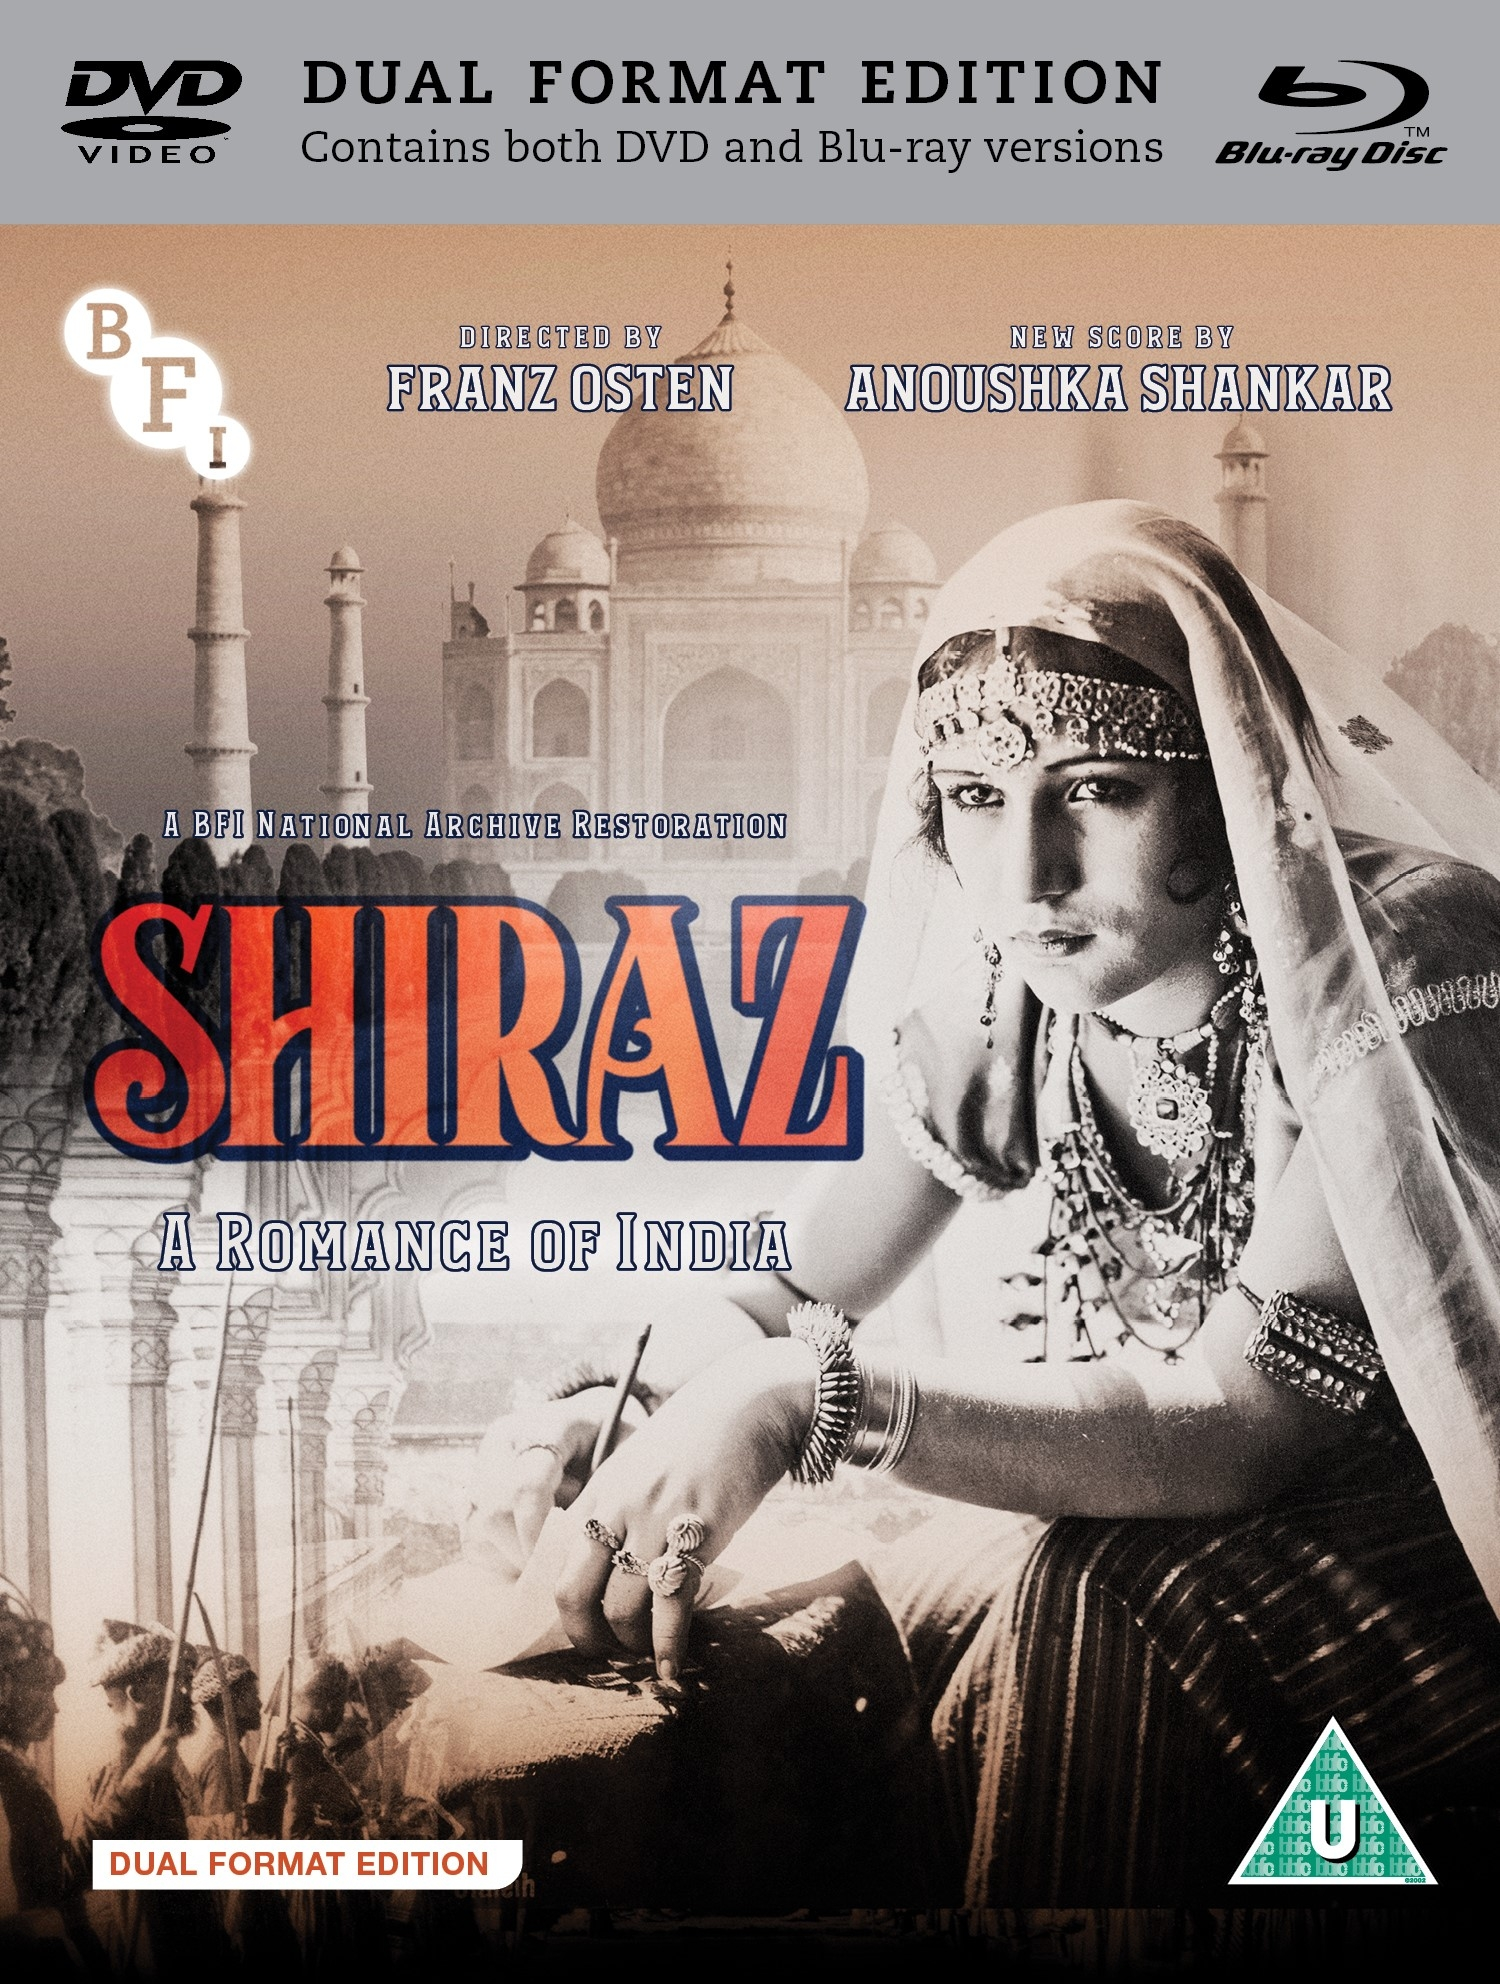 Buy Shiraz: A Romance of India (Dual Format Edition)